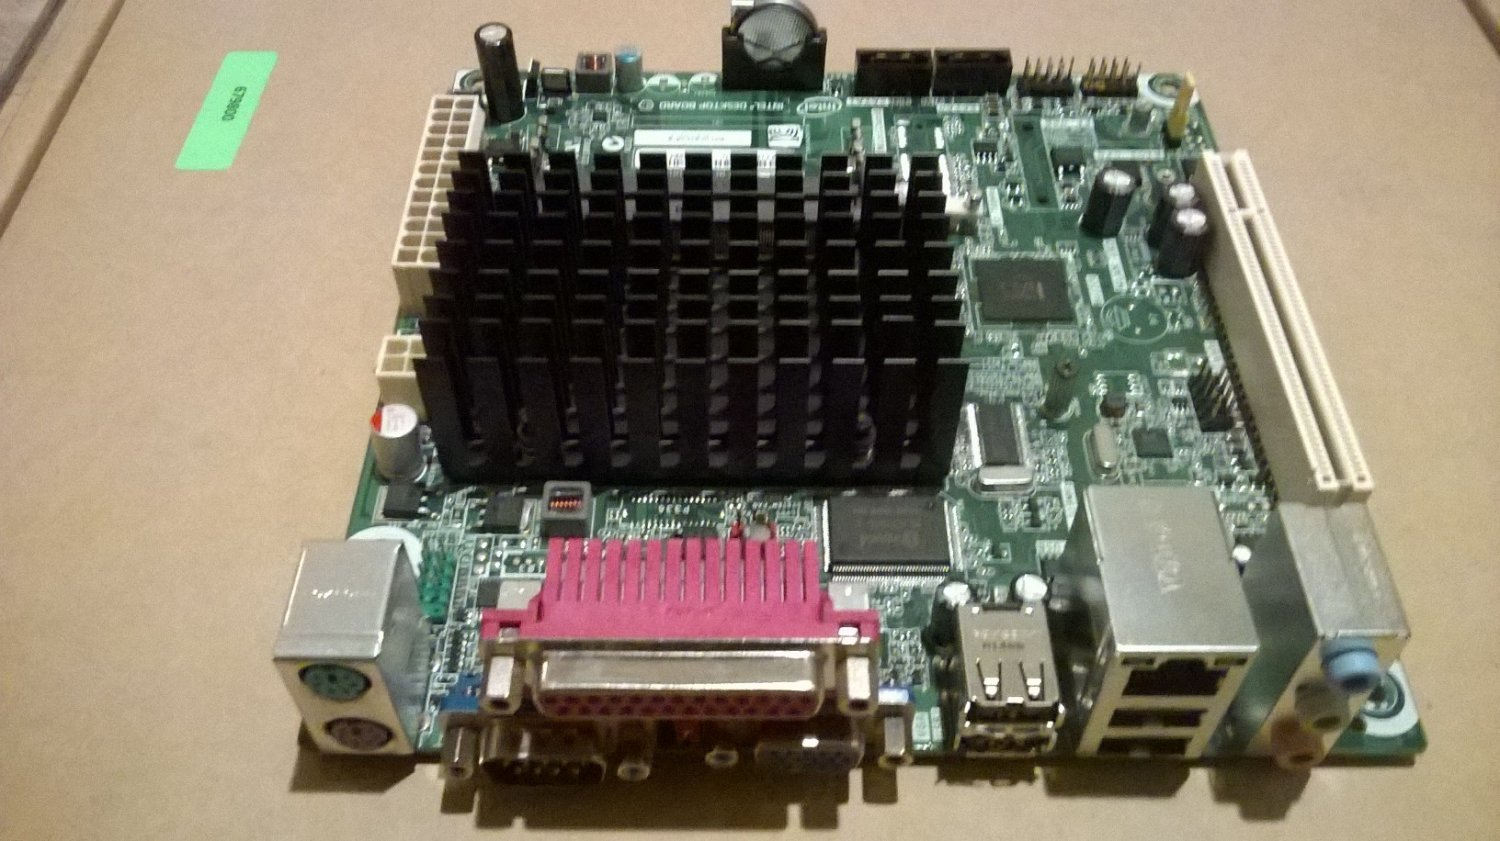 INTEL D425KT MINI-ITX MOTHERBOARD, USED. QTY AVAILABLE. FREE SHIPPING!!! BUY NOW